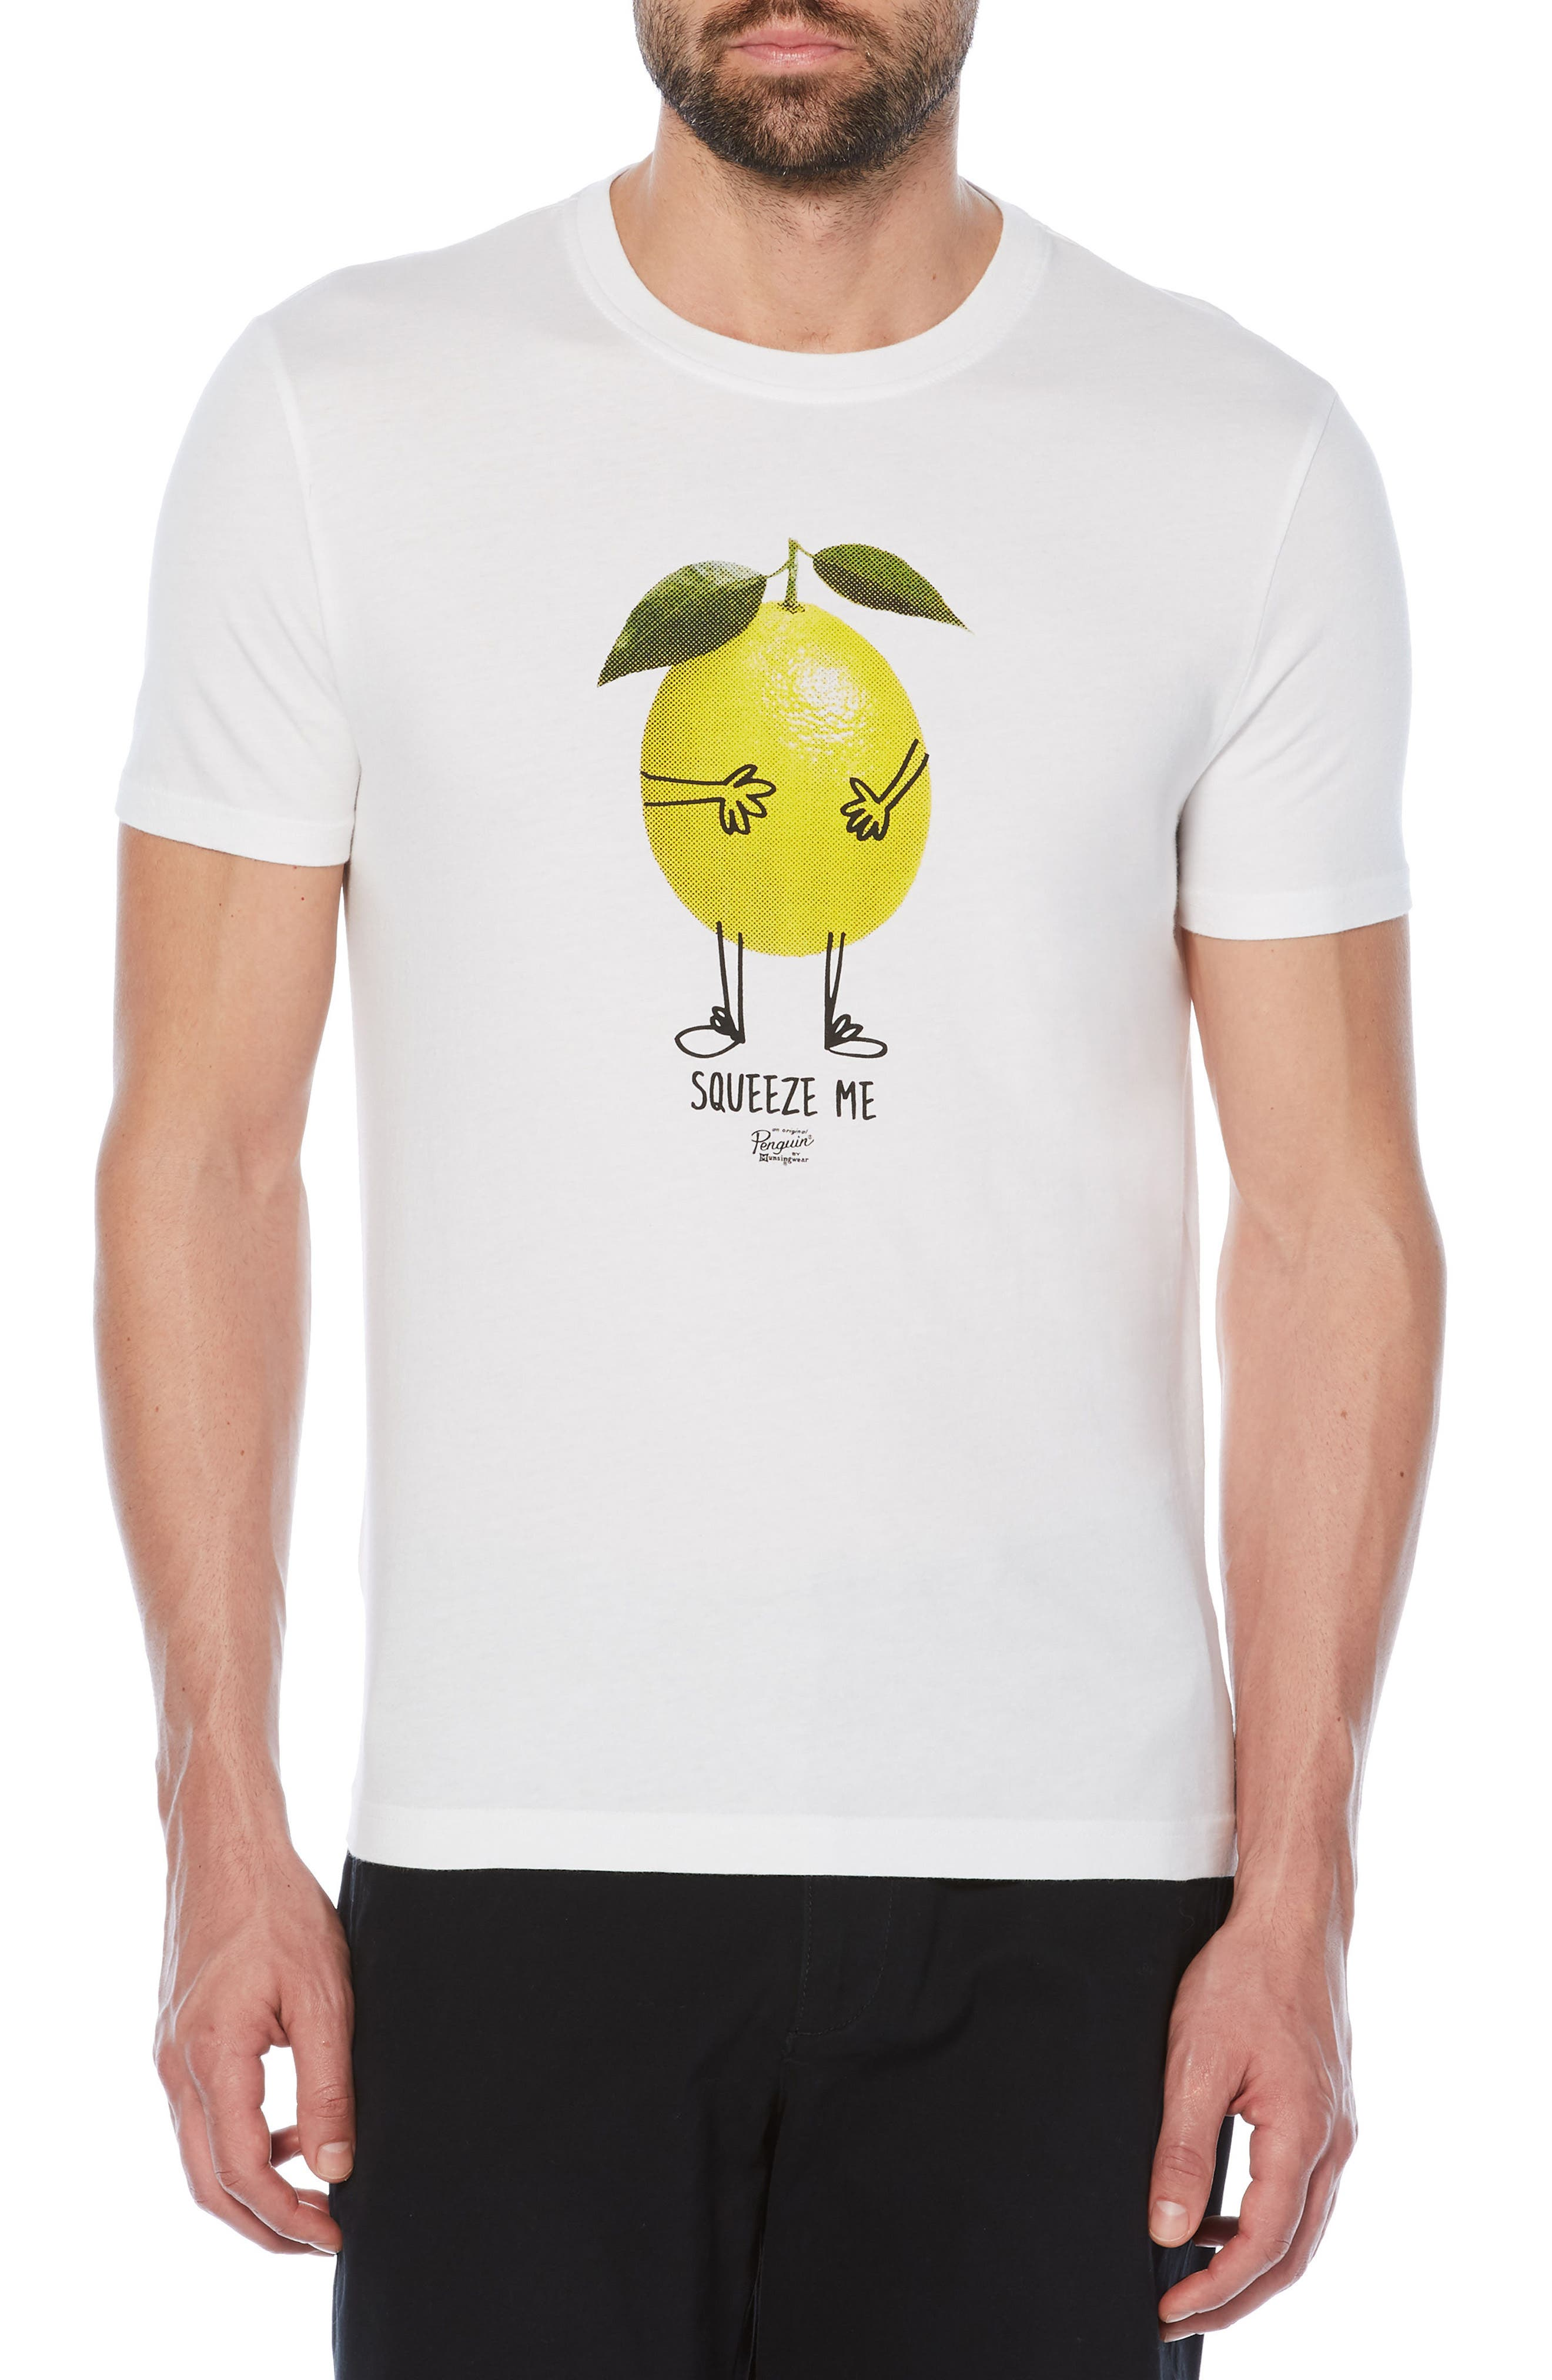 Squeeze Me T-Shirt,                             Main thumbnail 1, color,                             118